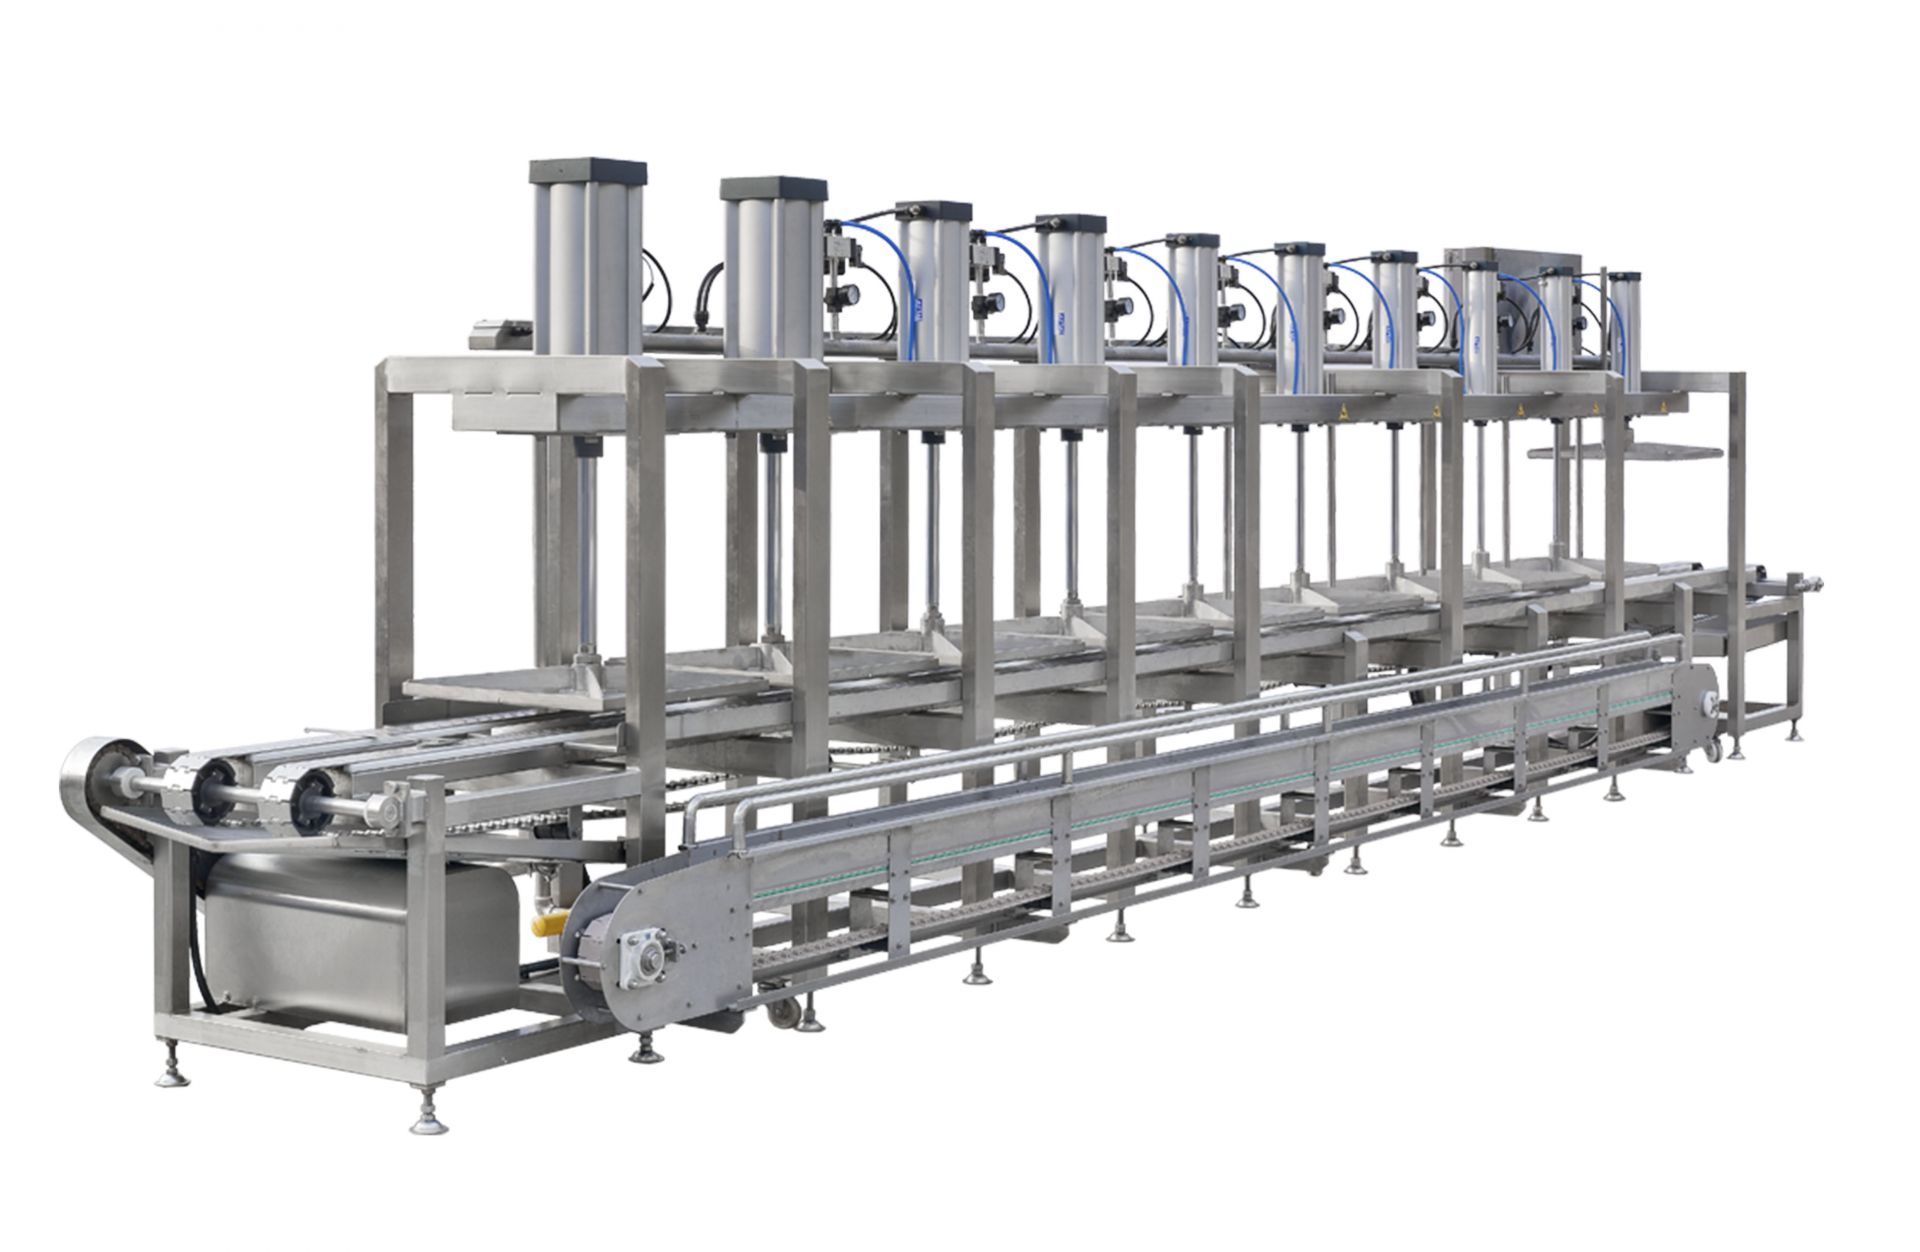 Automatic Continuous Tofu Molds Pressing Machine can save labor costs.